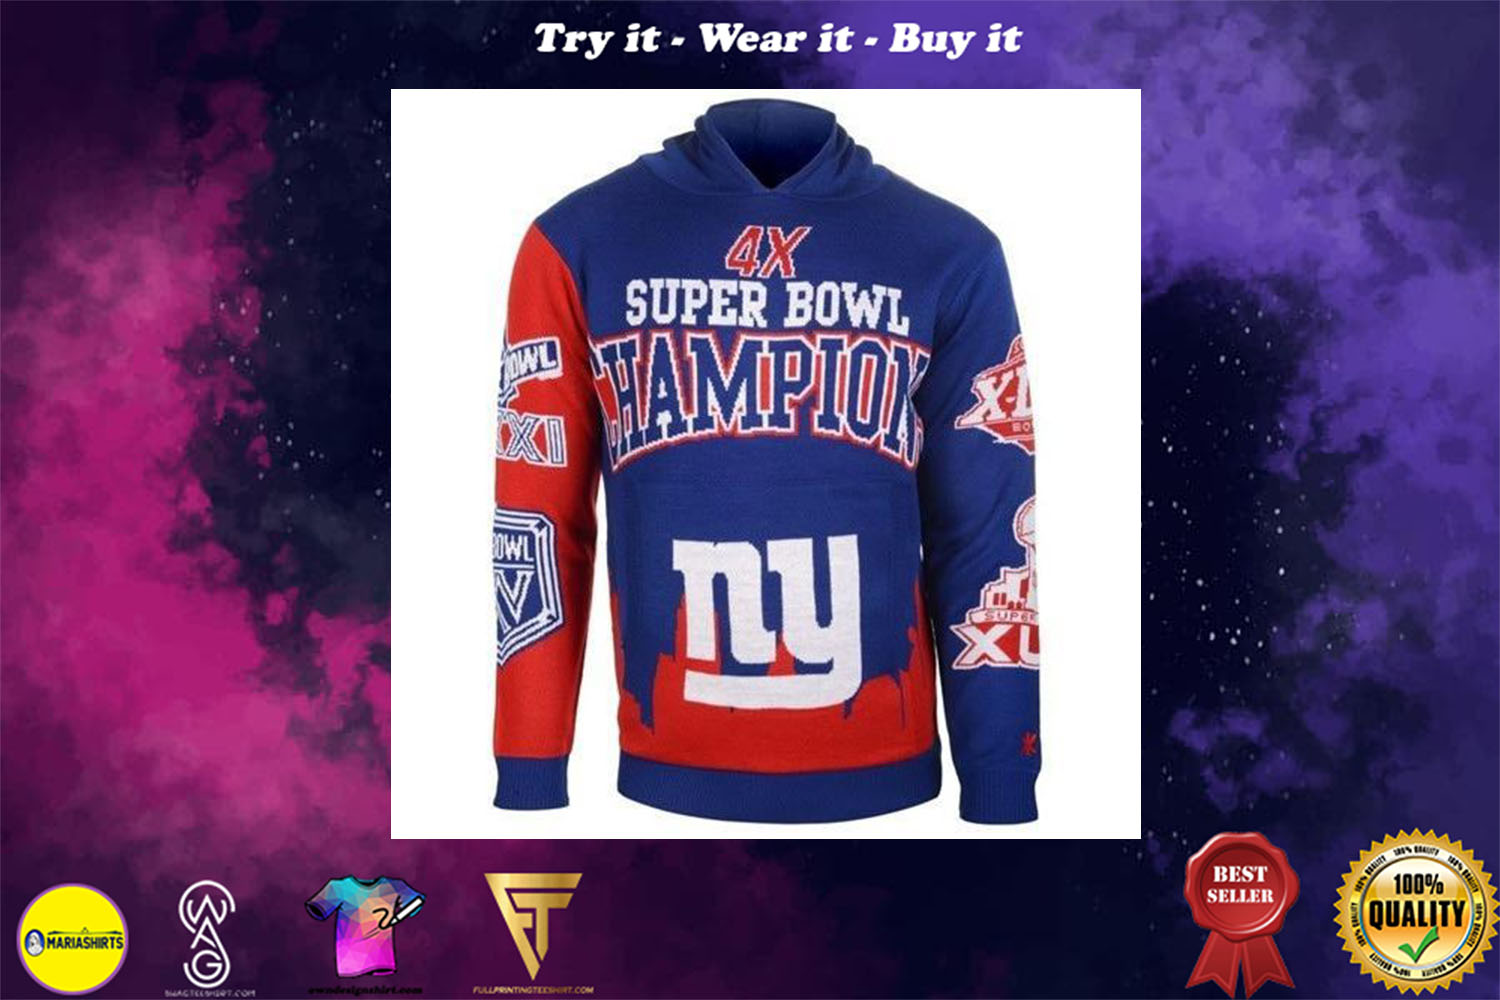 [special edition] the new york giants super bowl champions full over print shirt - maria